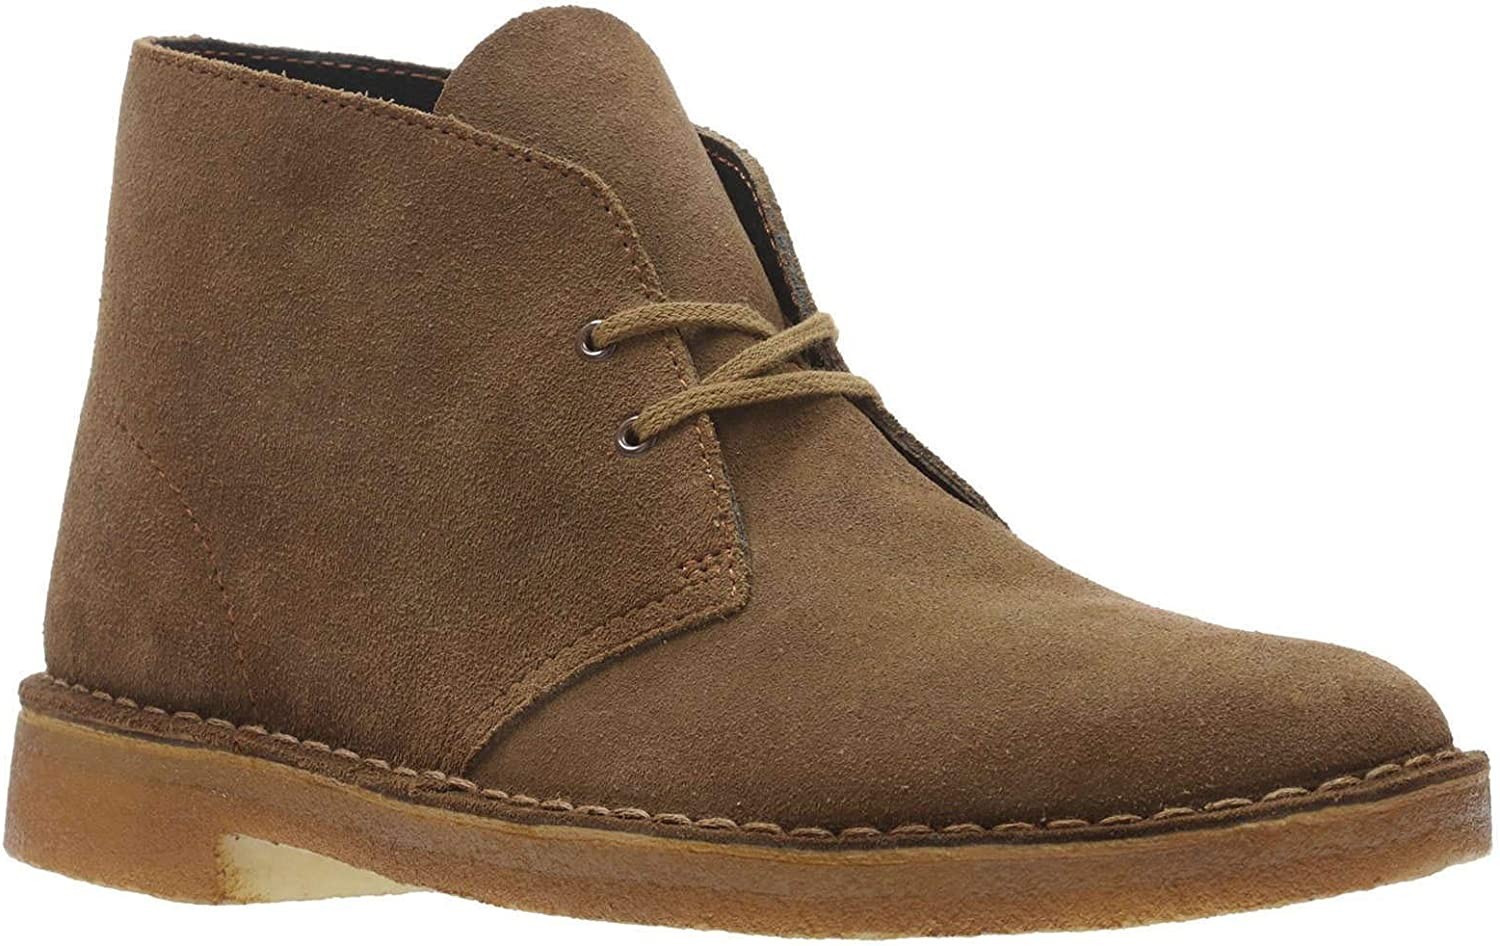 Special price for a limited time Clarks ORIGINALS 5 ☆ popular Mens Desert Boot Suede 10.5 Brown Boots Cola US